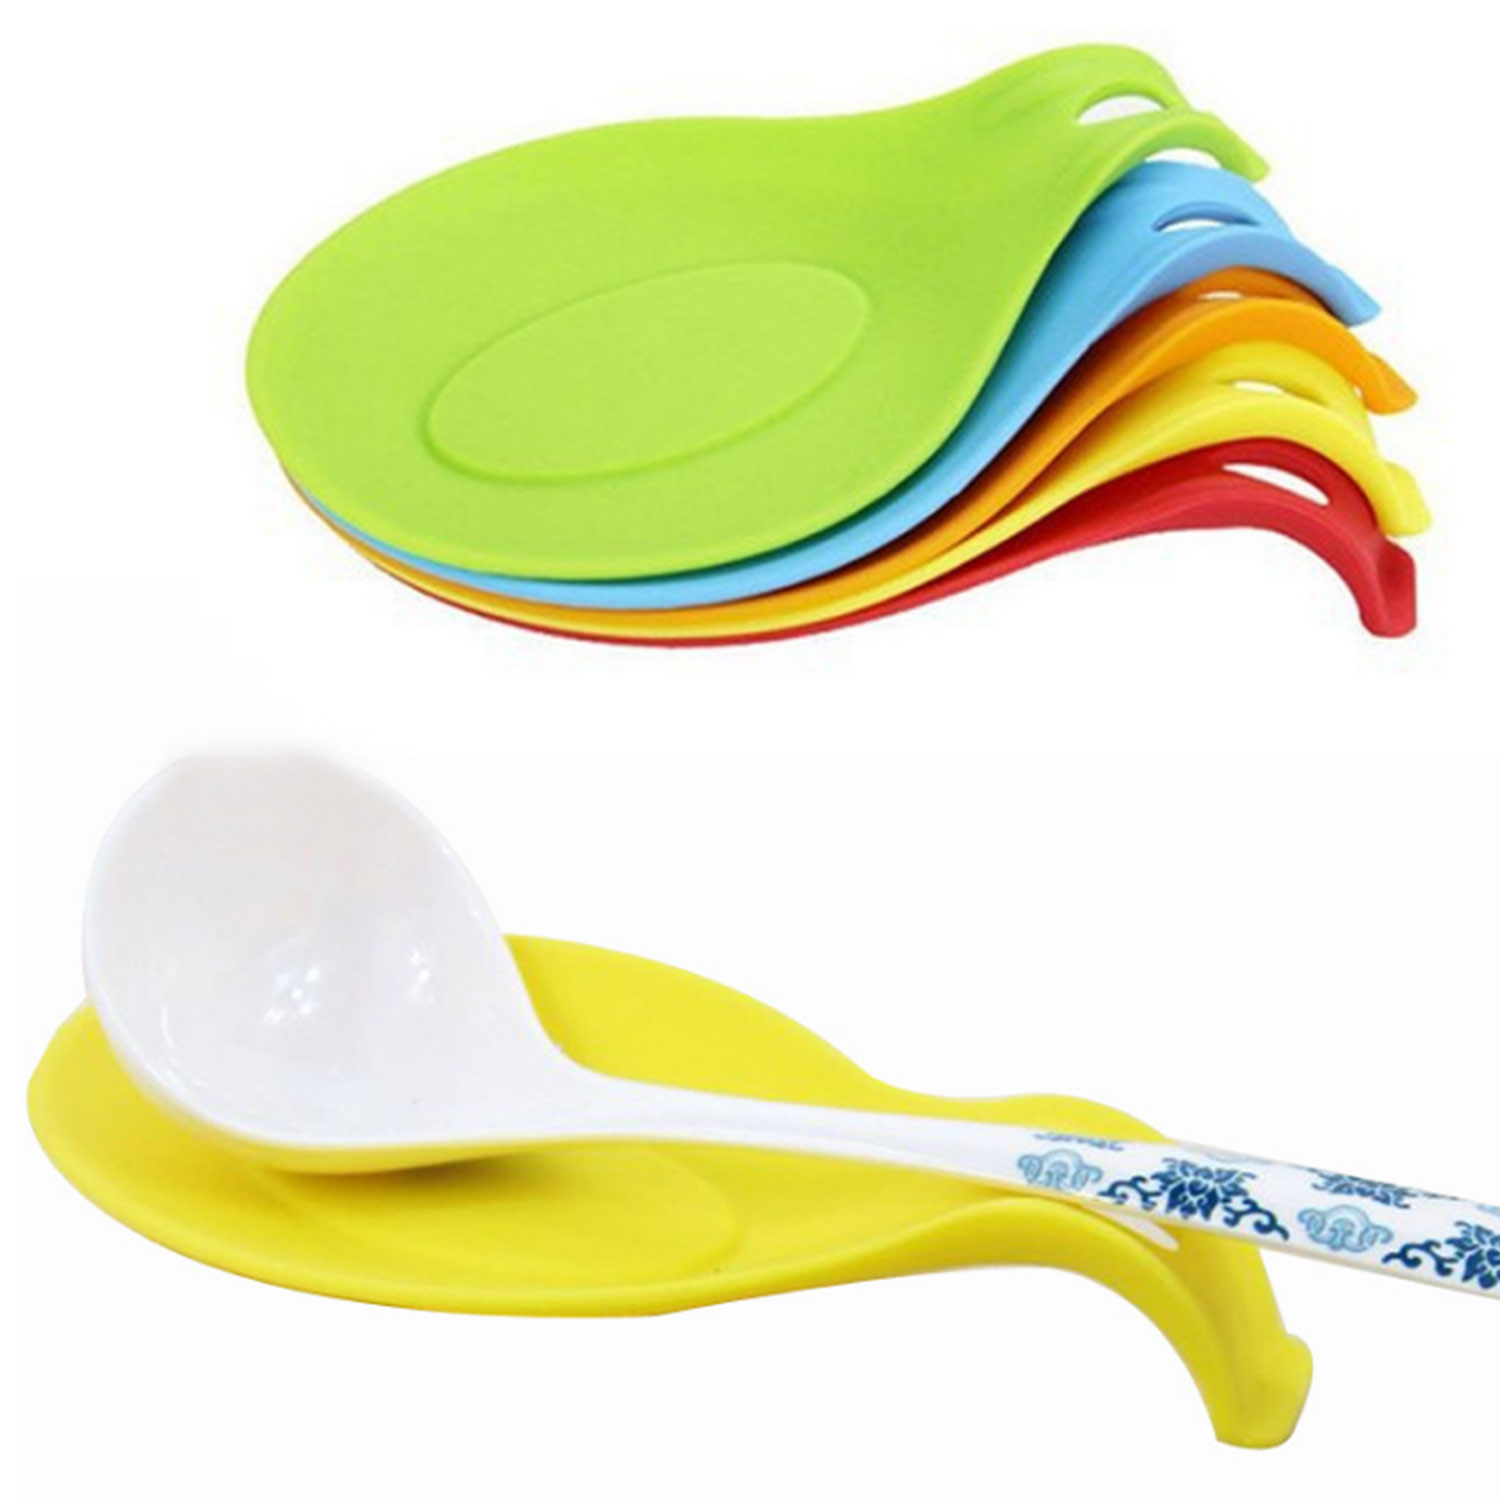 High Temperature Resistant Silicone Soup Spoon Mat Anti-Scald Spoon Holder Pad Kitchen Tool 1pc